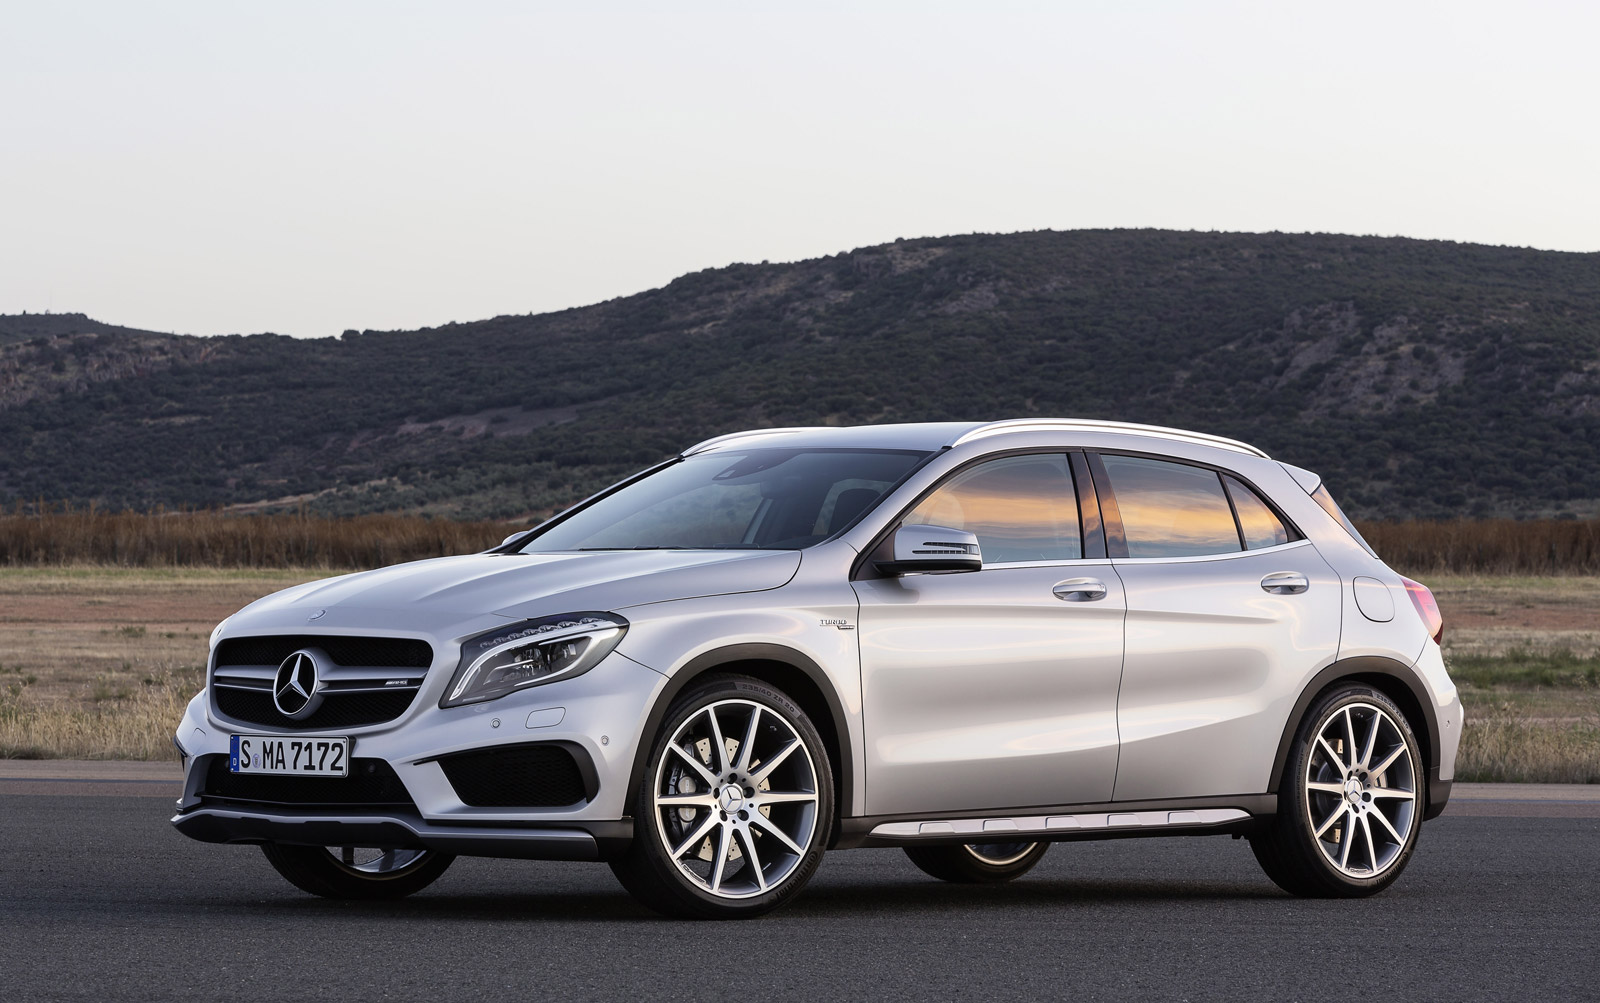 new and used mercedes benz gla class prices photos reviews specs the car connection. Black Bedroom Furniture Sets. Home Design Ideas